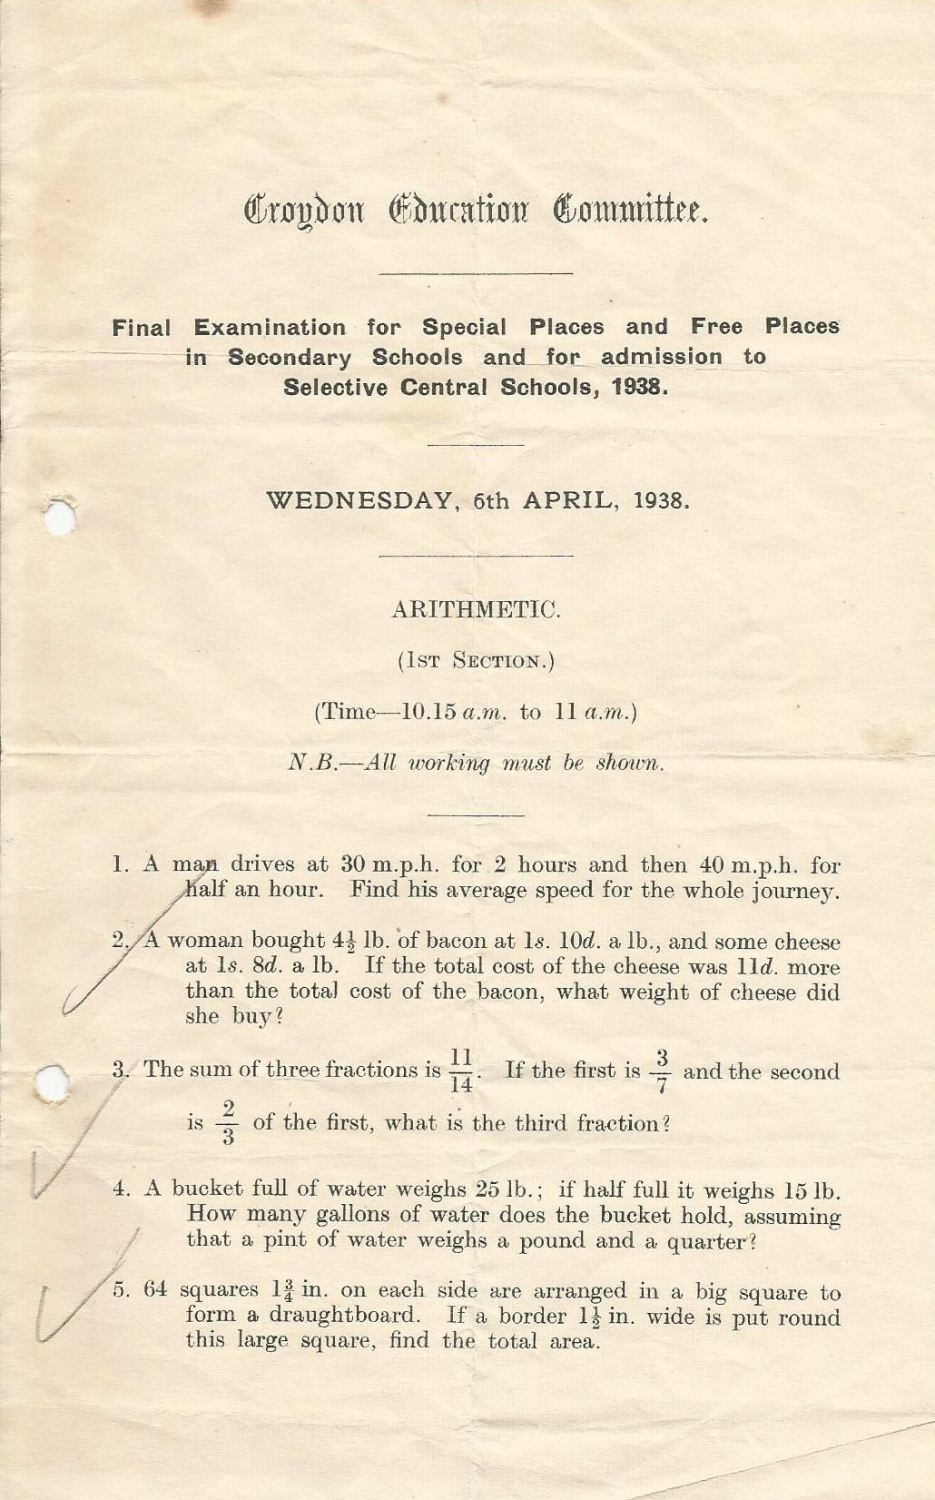 final entrance exam arithmetic section 1 6.4.1938